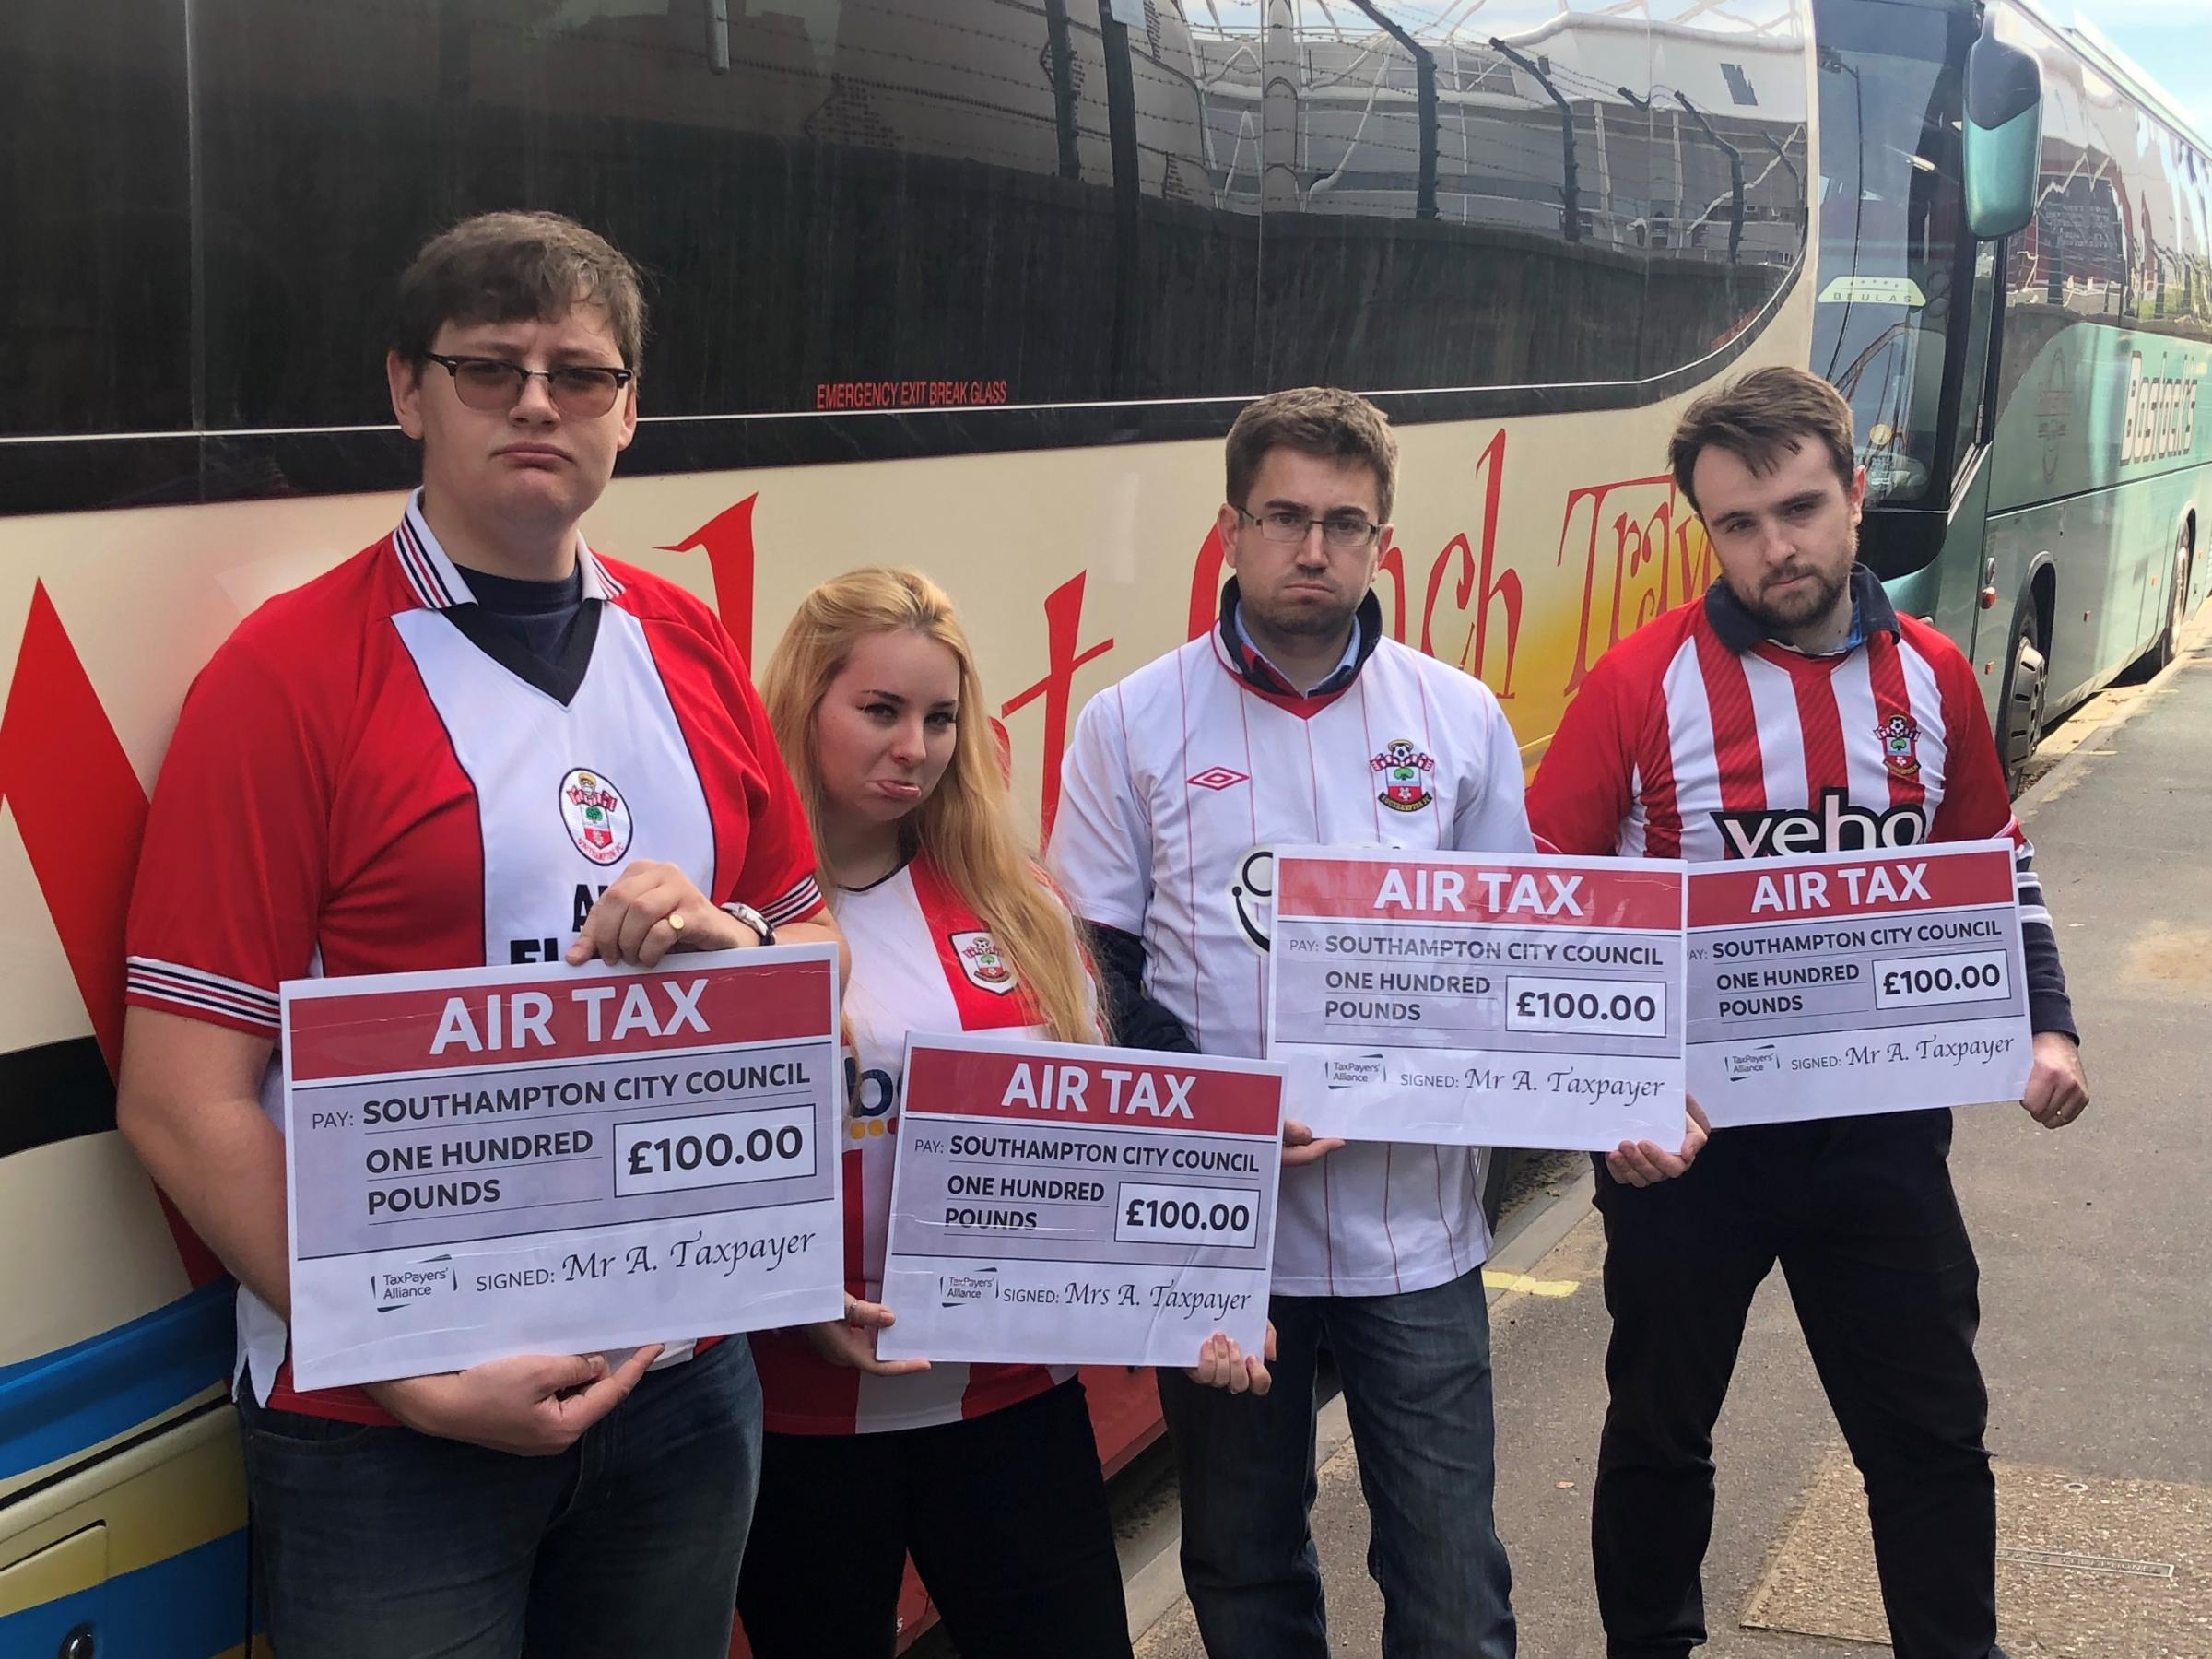 Taxpayers' Alliance went to St Mary's to campaign against proposals to charge for entering the city